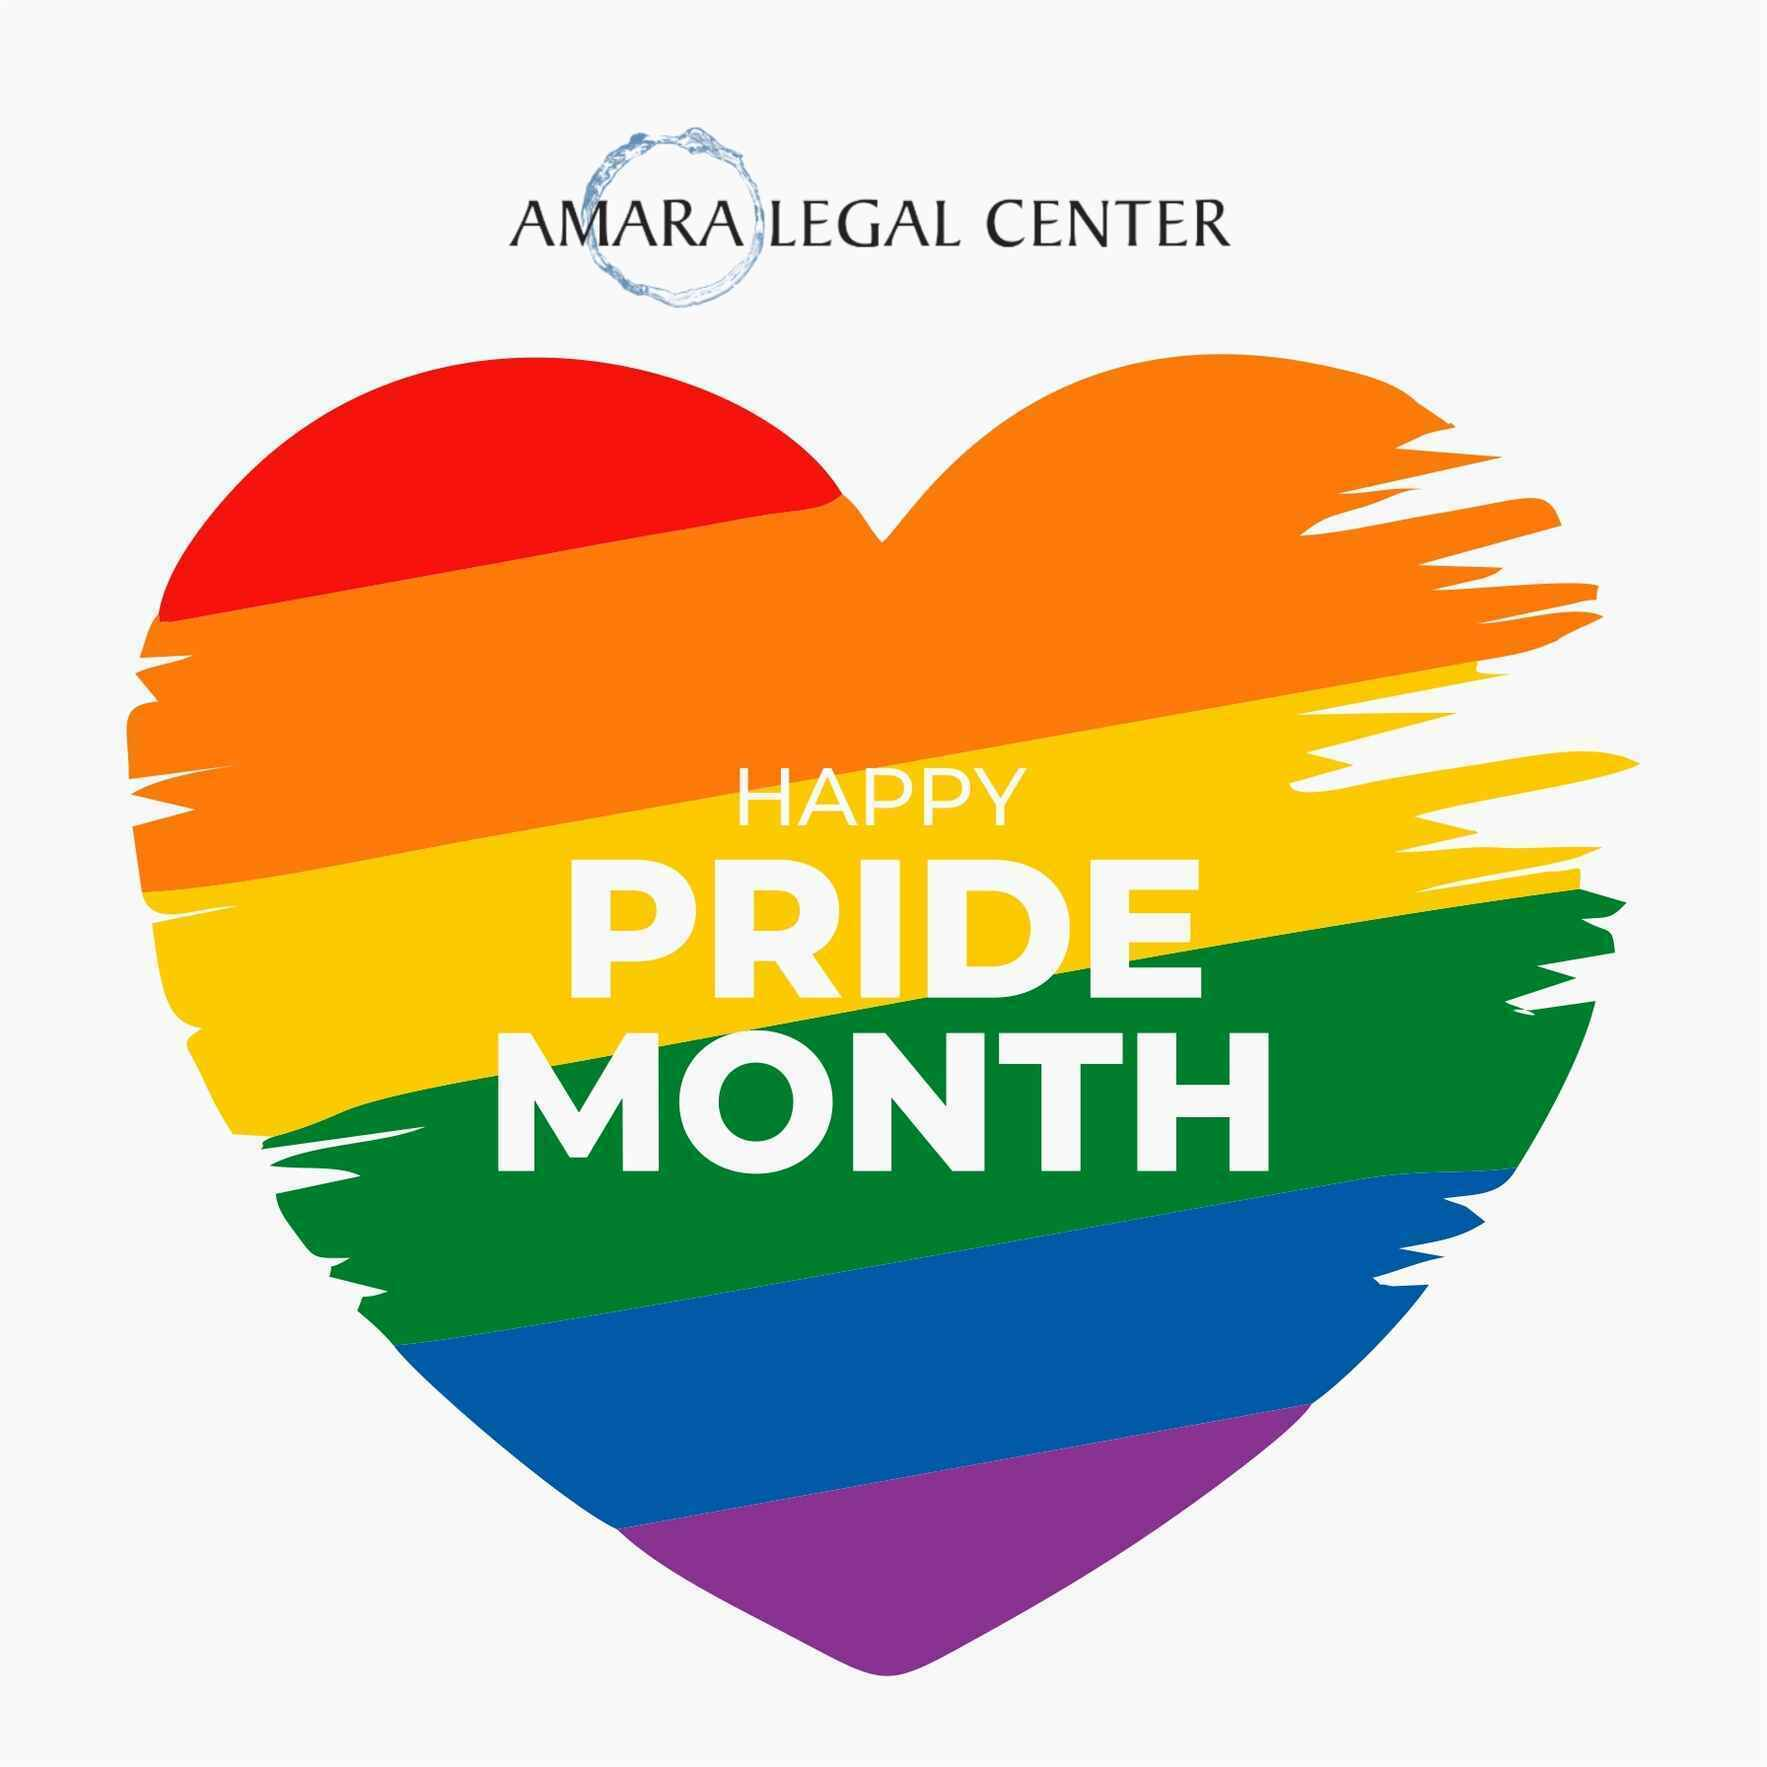 Give with pride! Donate to help support Amara's LGBTQ+ community! image